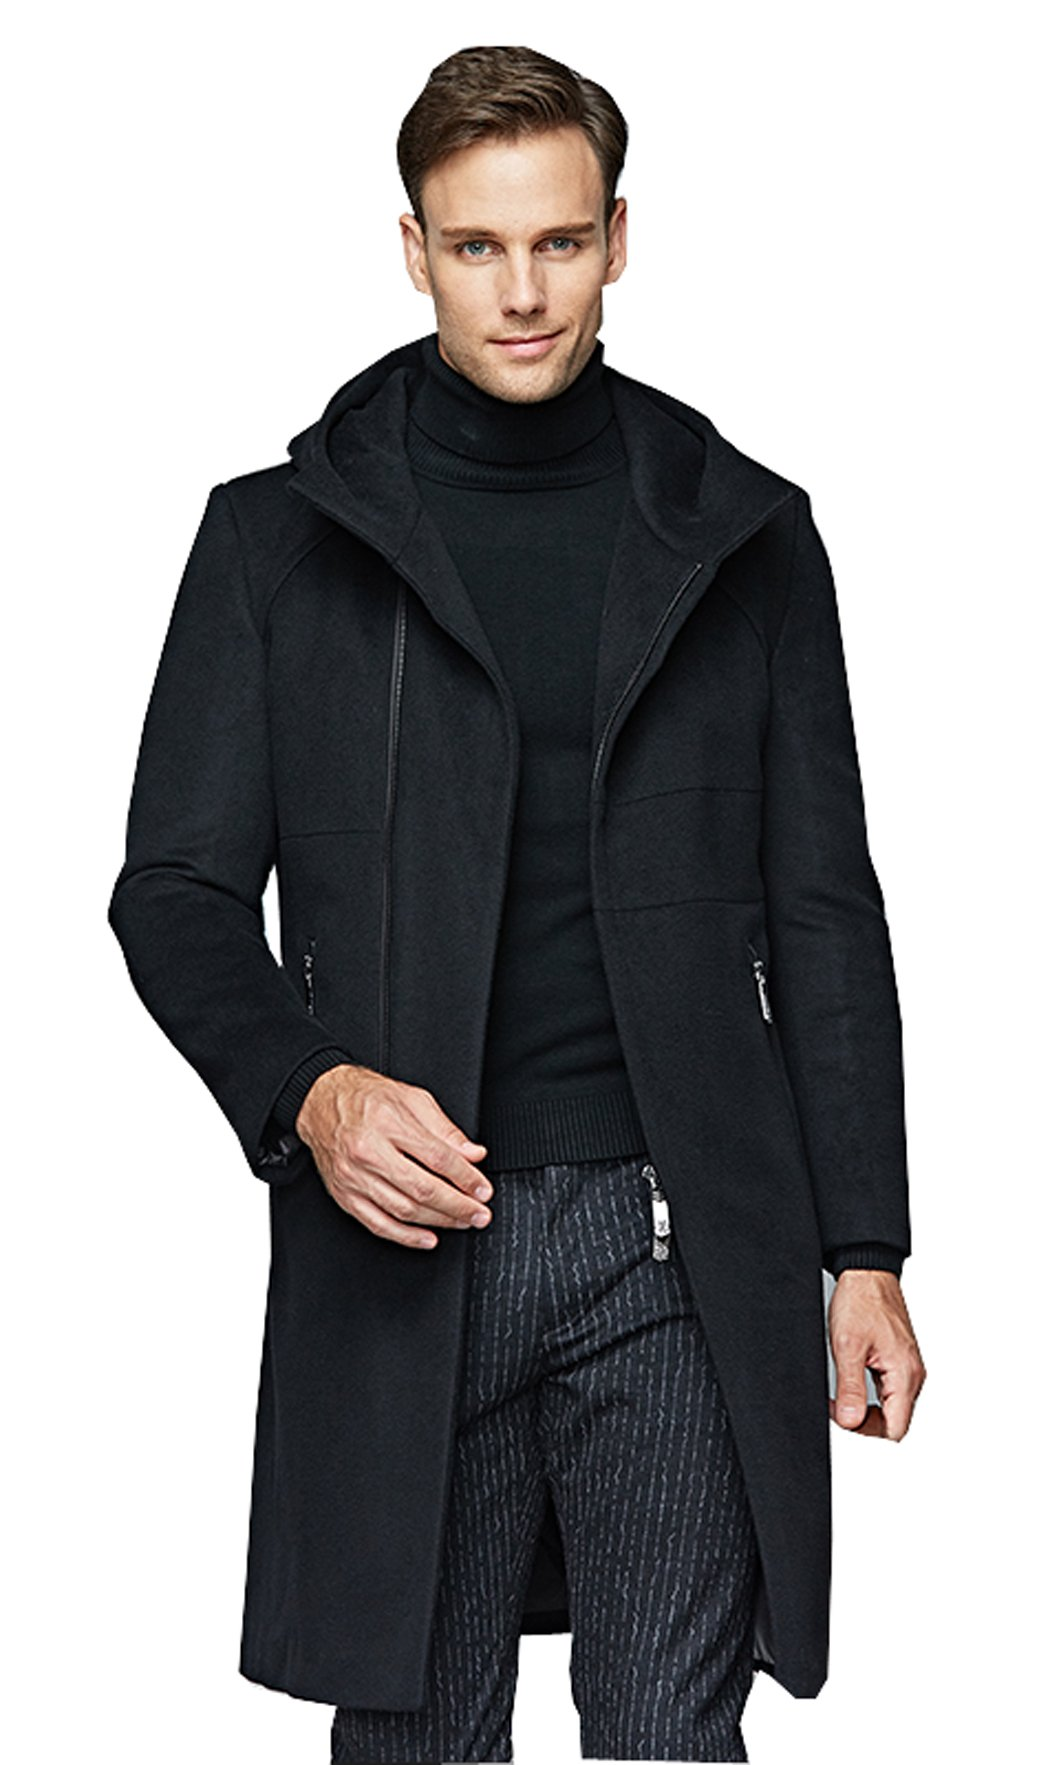 UNbox Mens Winter Wool French Jackets Business Fit Hood Overcoat Black M by UNbox